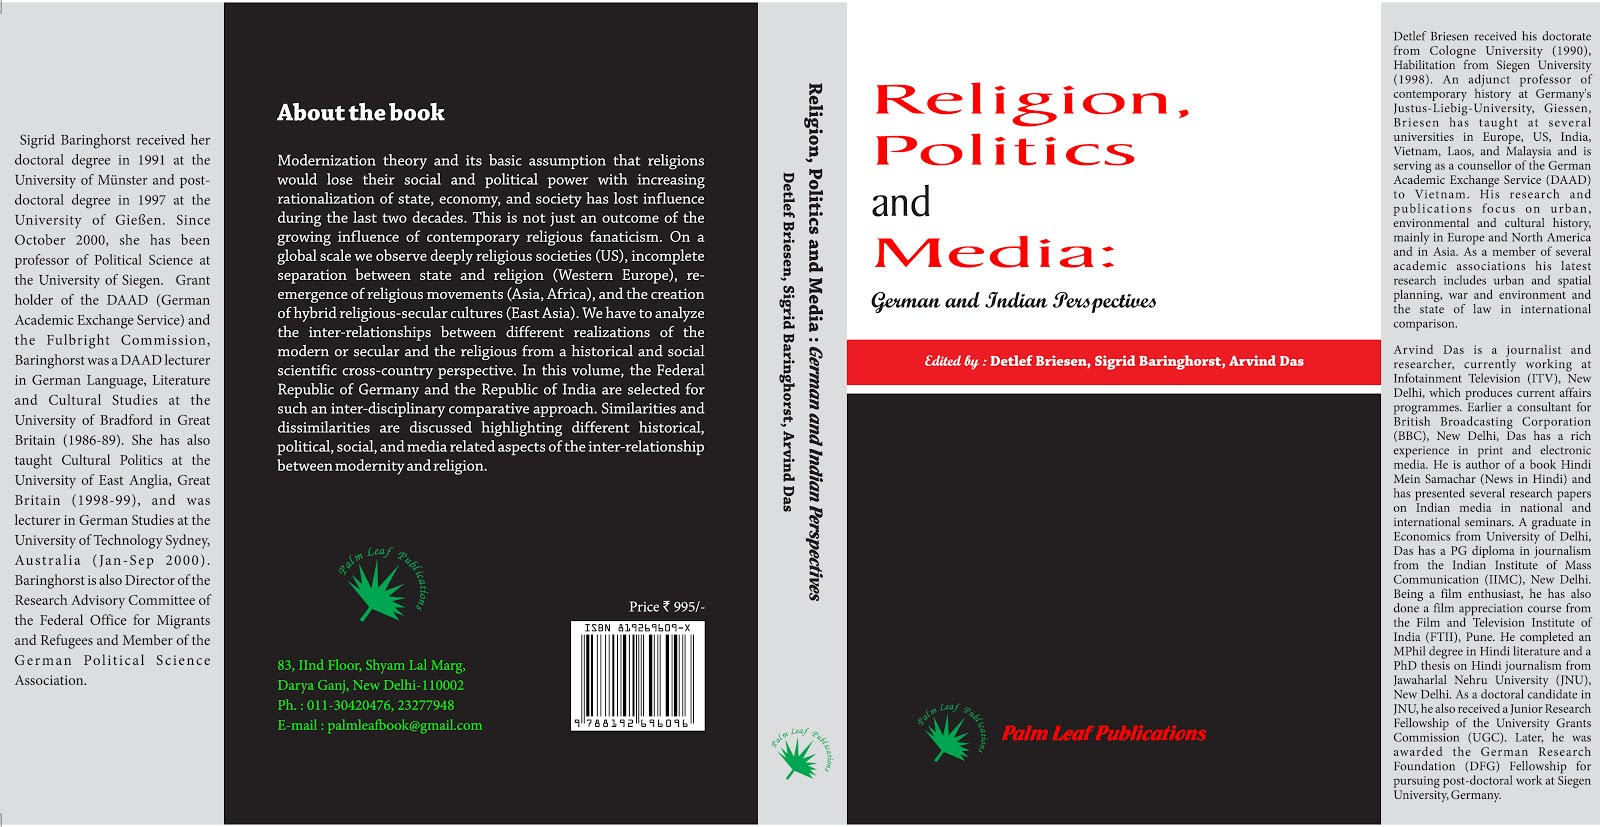 Religion Politics and Media: German and Indian Prespectives